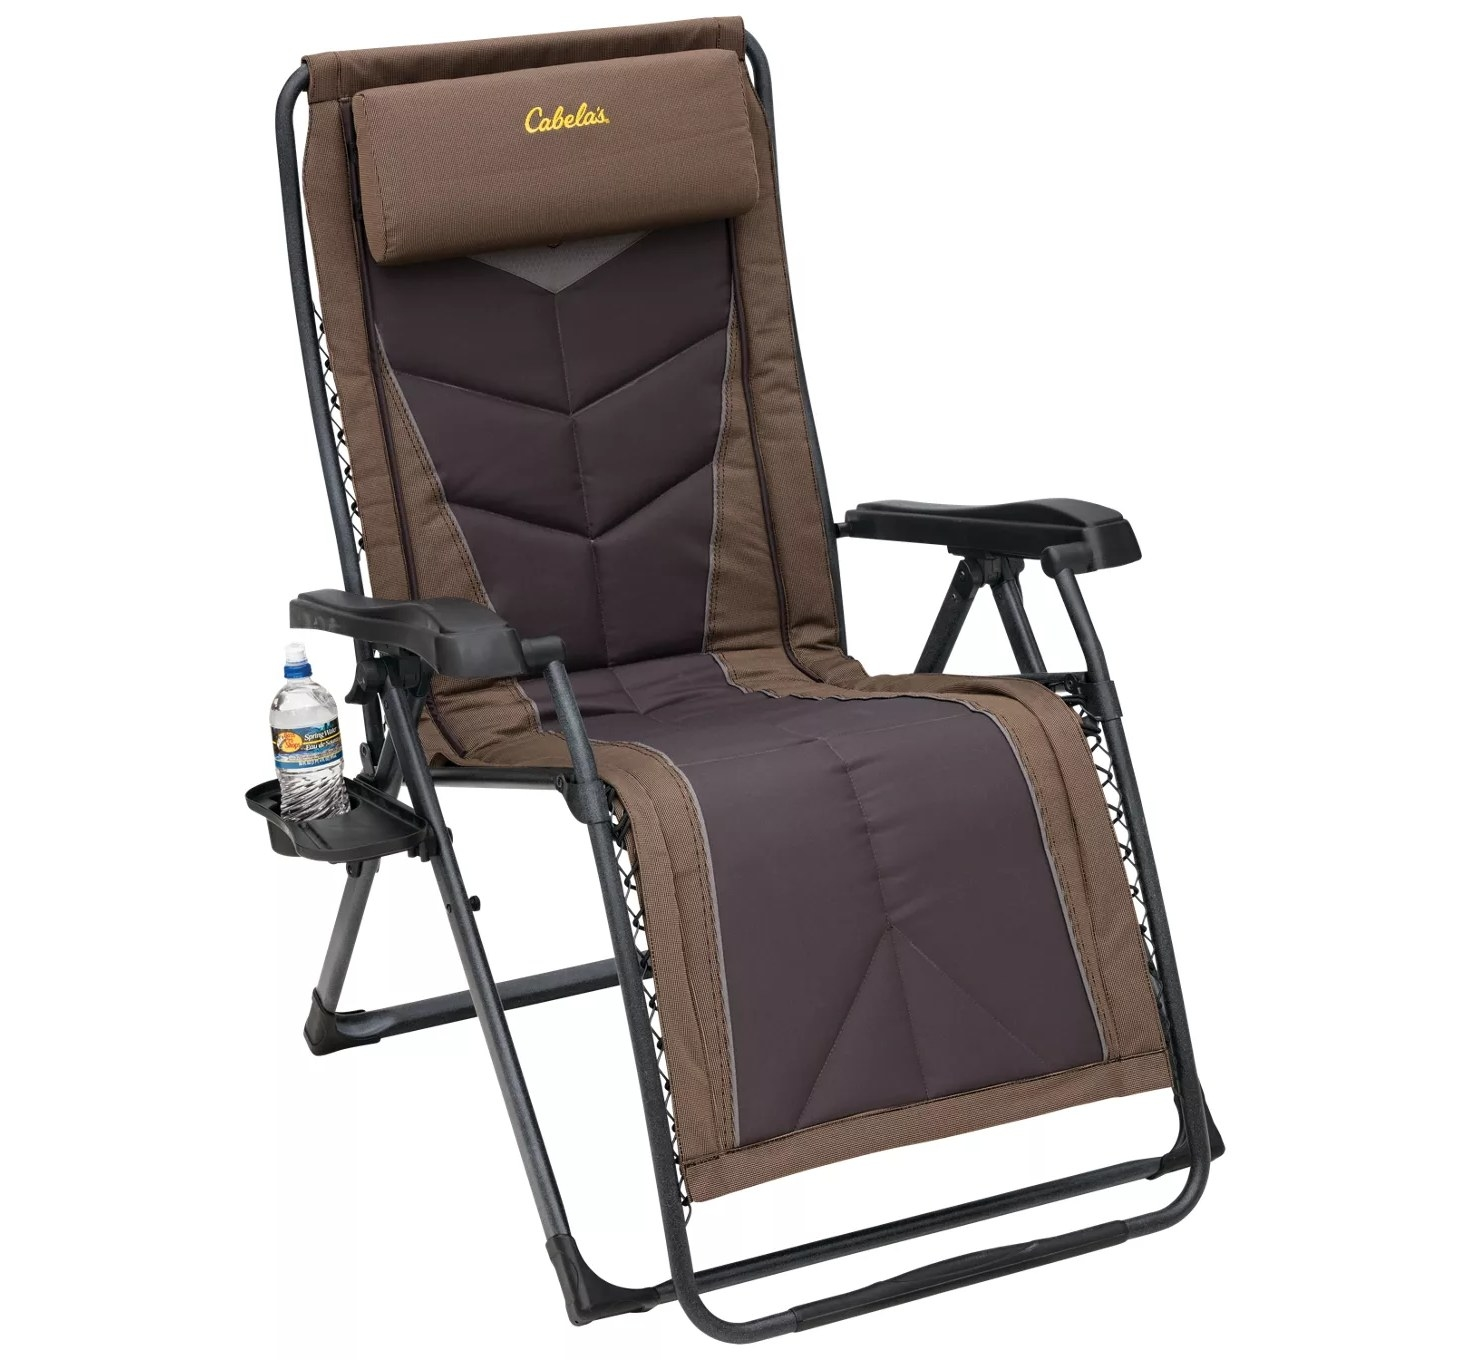 a lounge chair with a cup holder, arms, and a neck rest